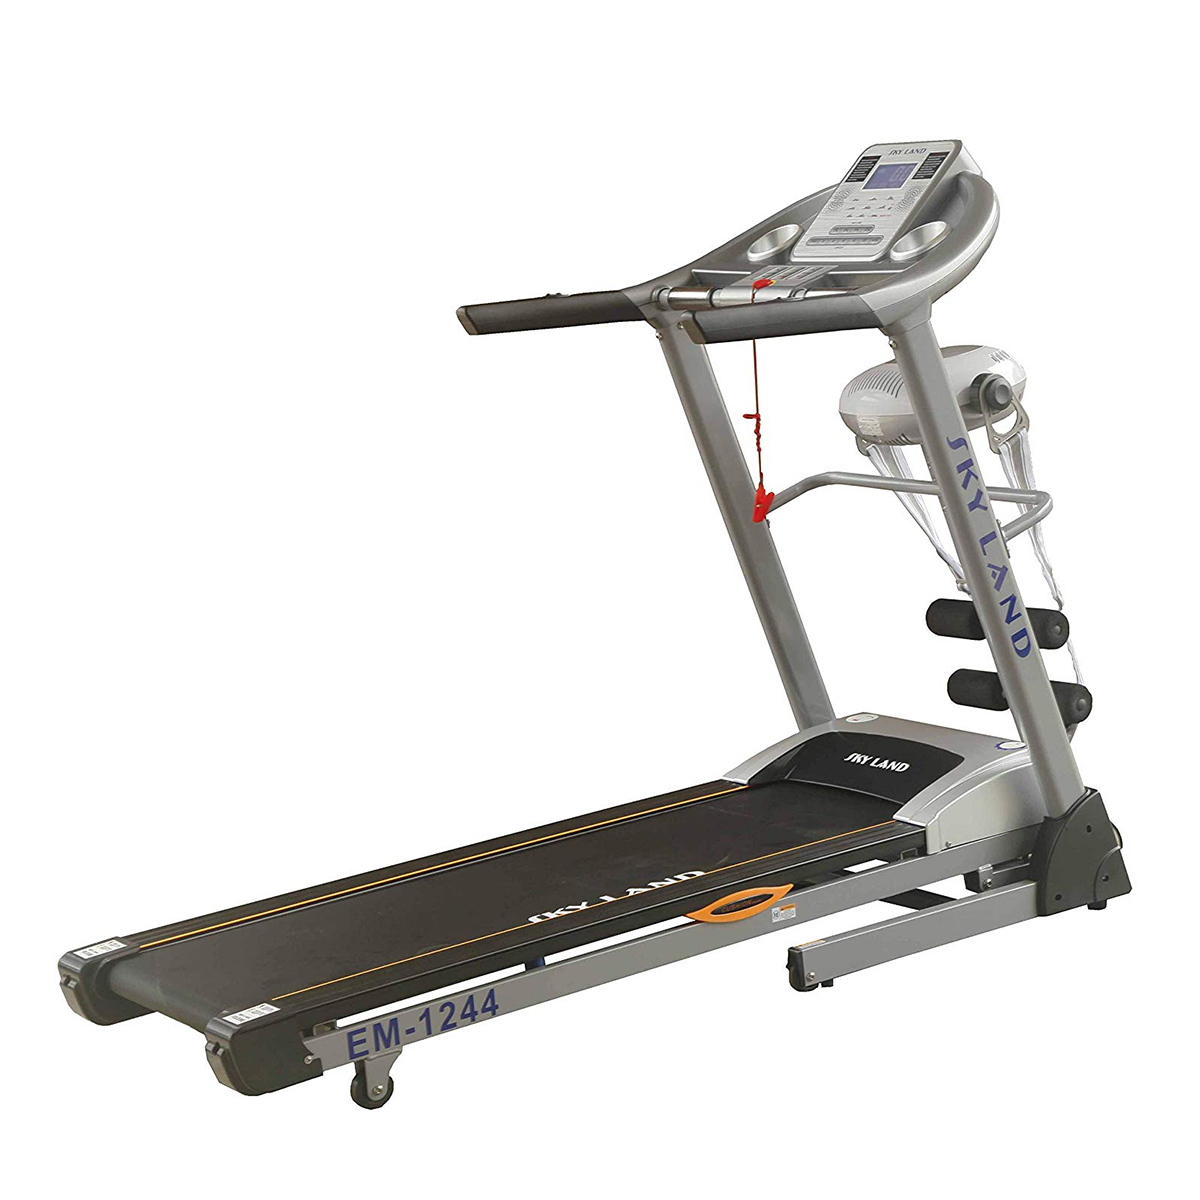 Skyland Home Use Treadmills-EM-1244